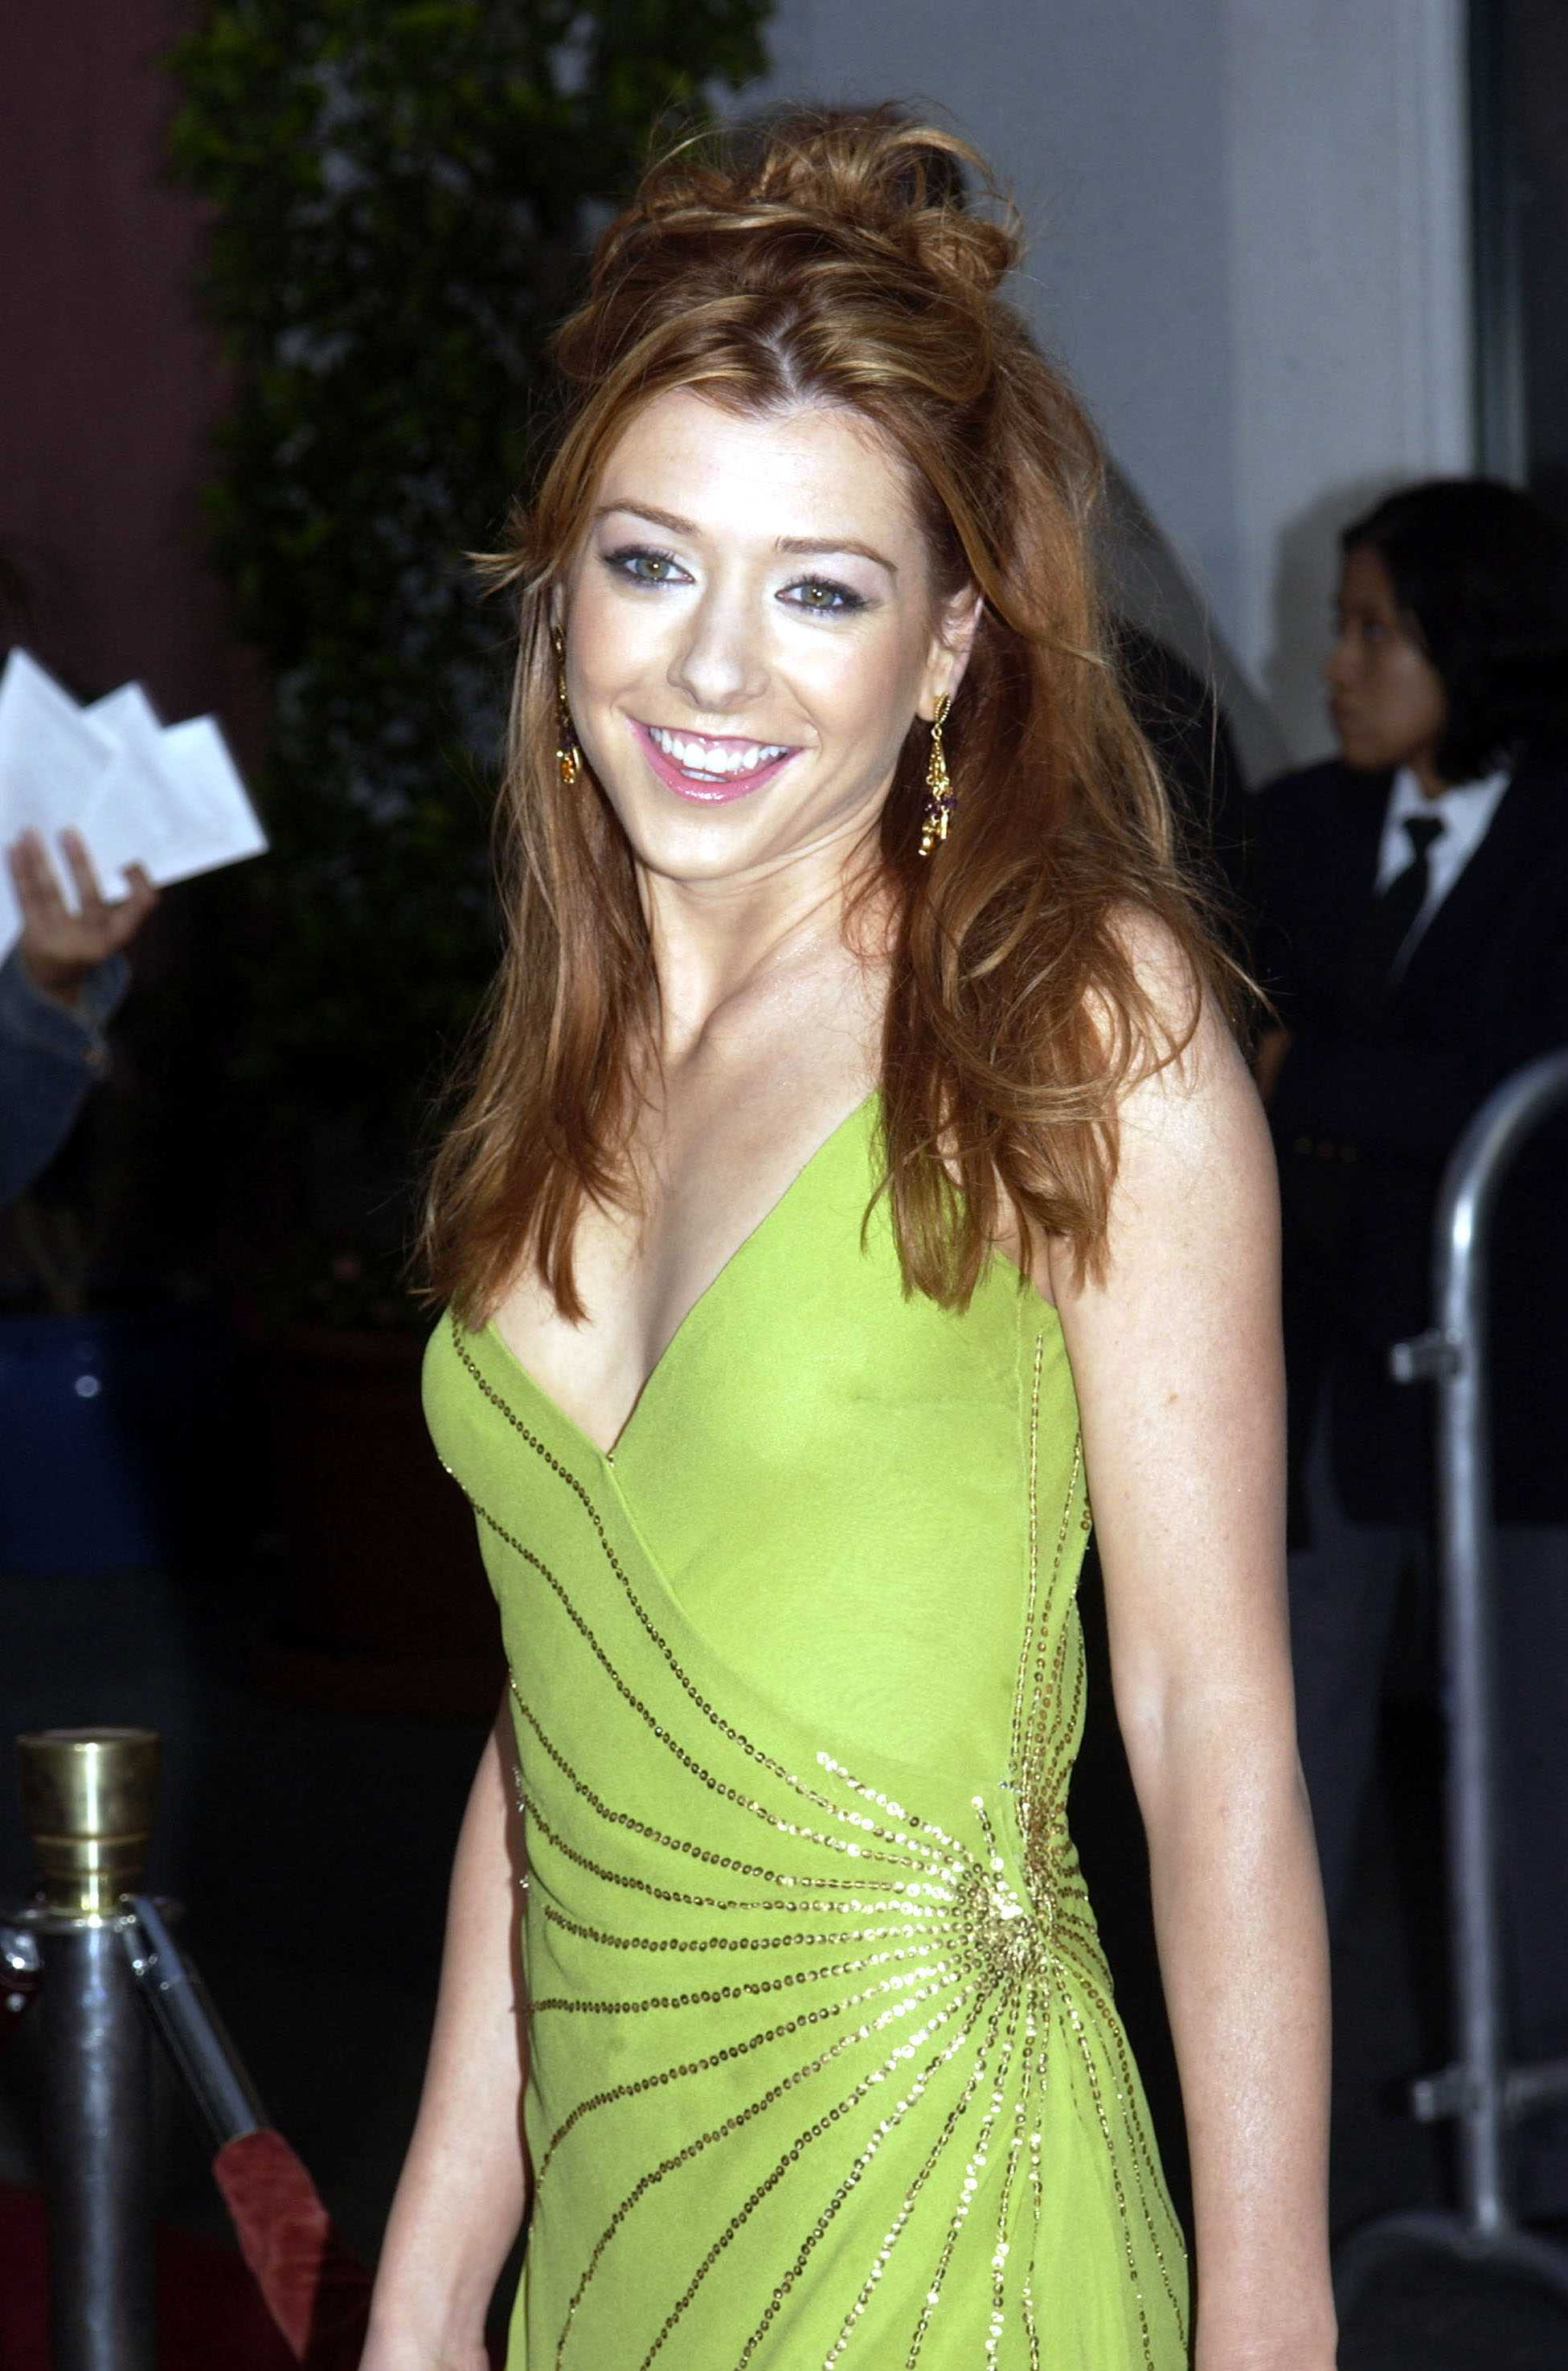 Alyson Hannigan American Pie Hot alyson hannigan hot bikini pics, nearly-nude photos